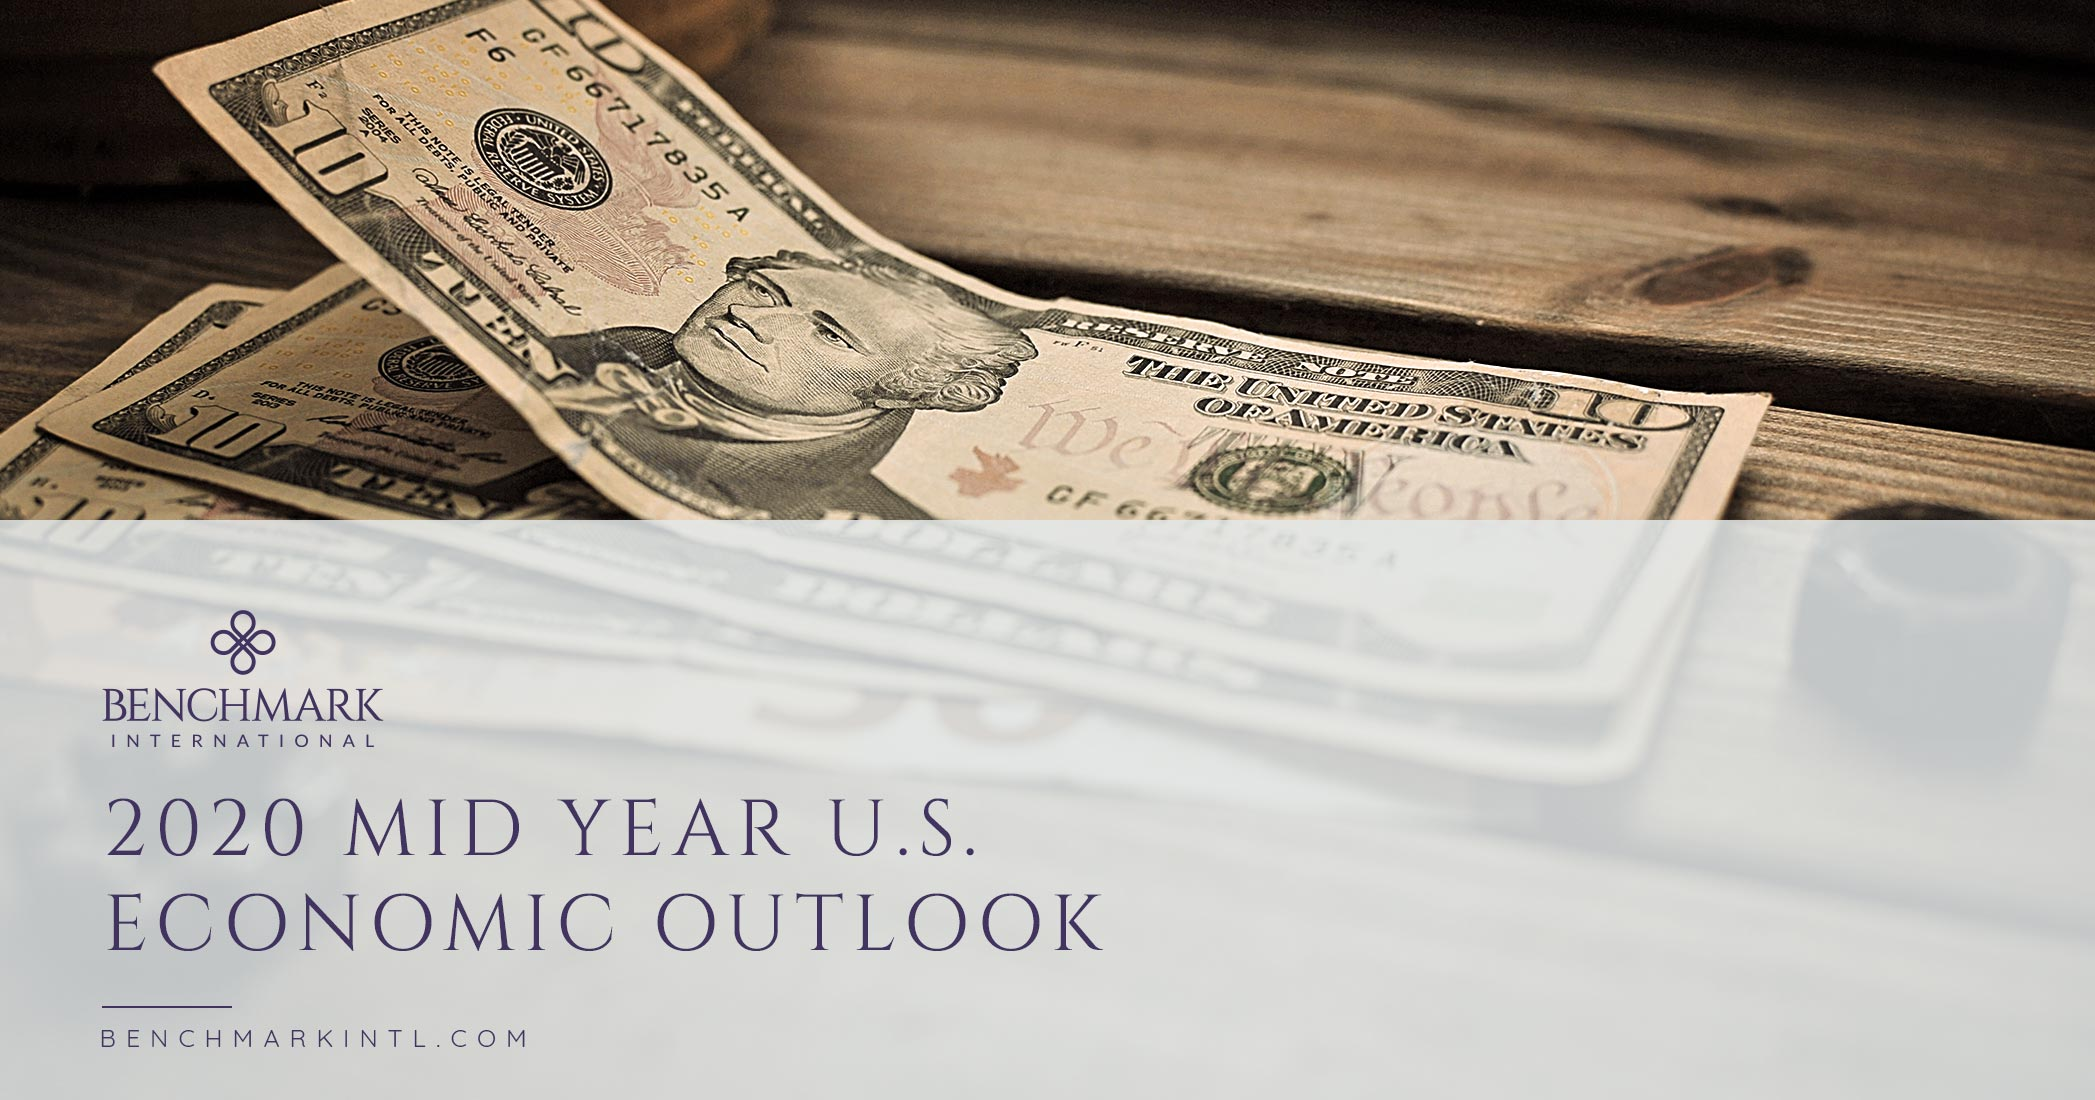 2020 Mid-Year U.S. Economic Outlook